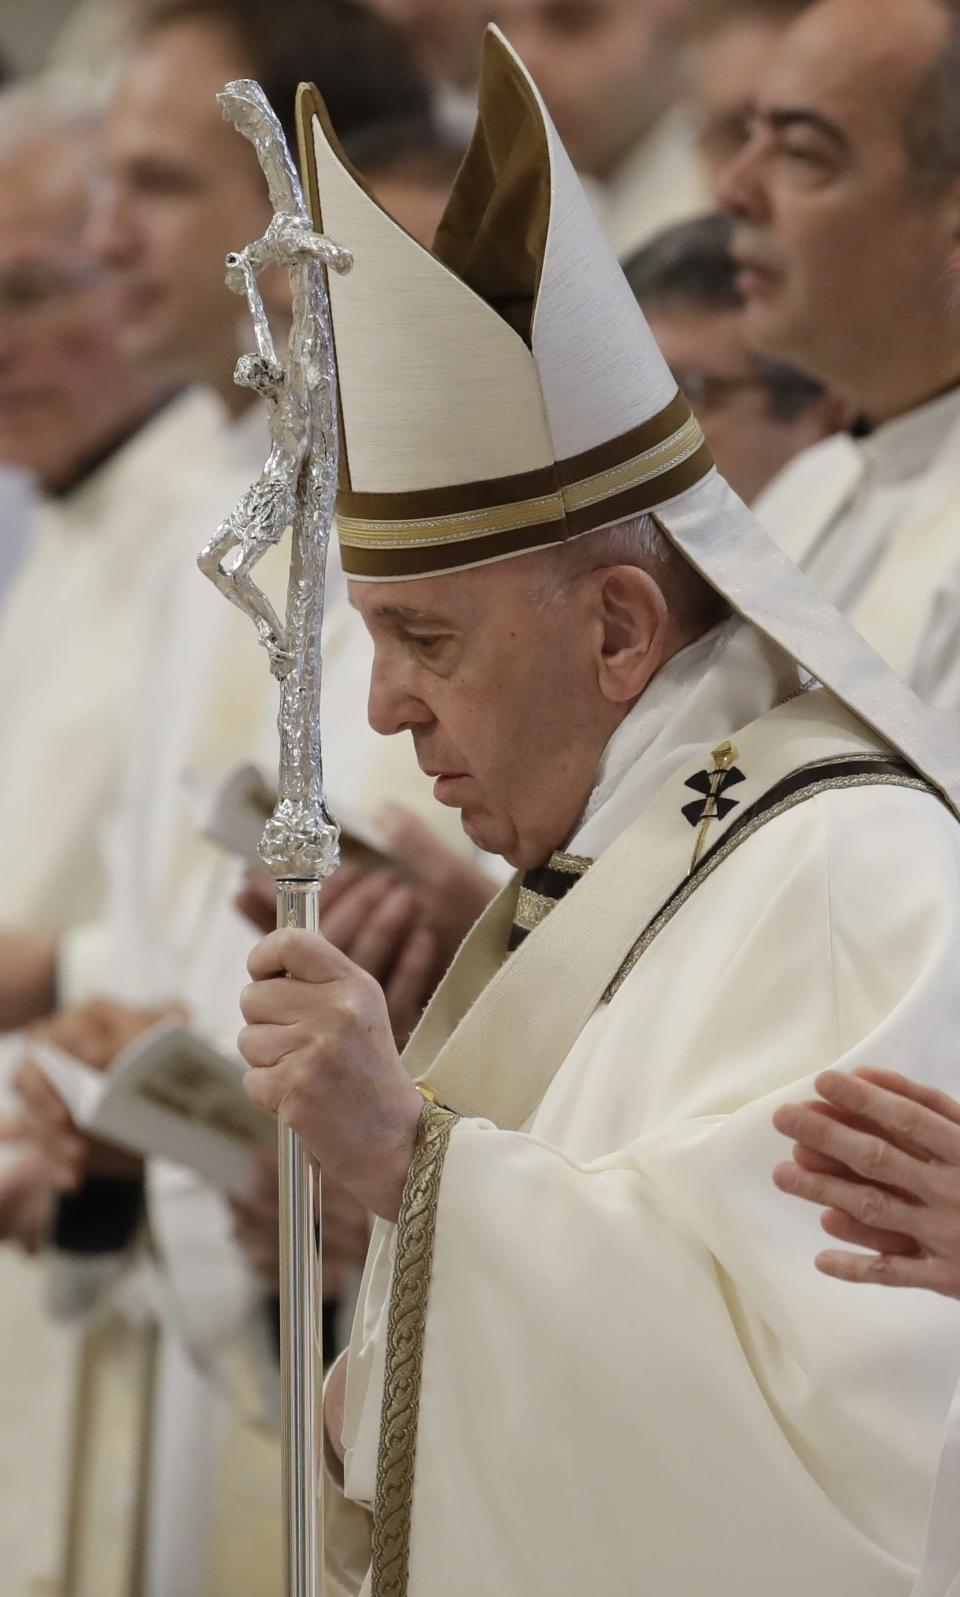 Pope Francis holds his pastoral staff as he arrives to celebrate Chrism Mass, inside St. Peter's Basilica, at the Vatican, Thursday, April 18, 2019. During the Mass the Pontiff blesses a token amount of oil that will be used to administer the sacraments for the year. (AP Photo/Alessandra Tarantino)